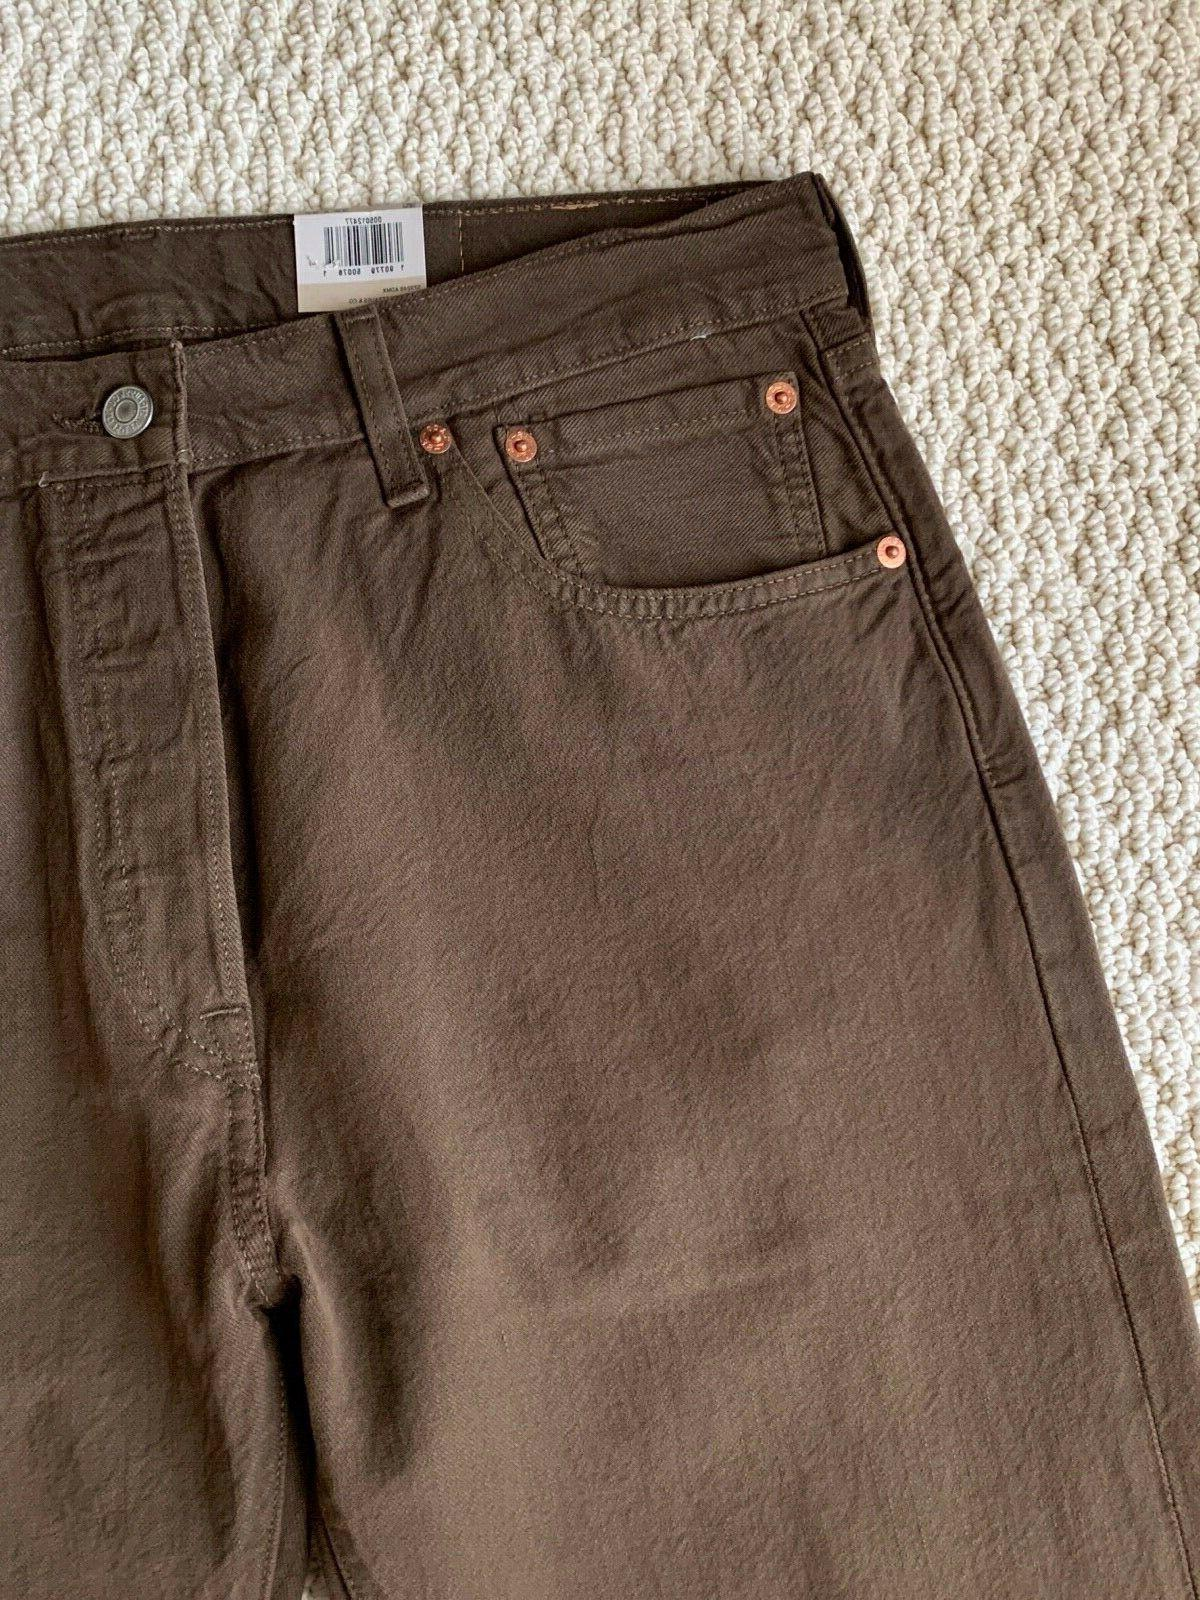 NWT Original Brown Straight 32